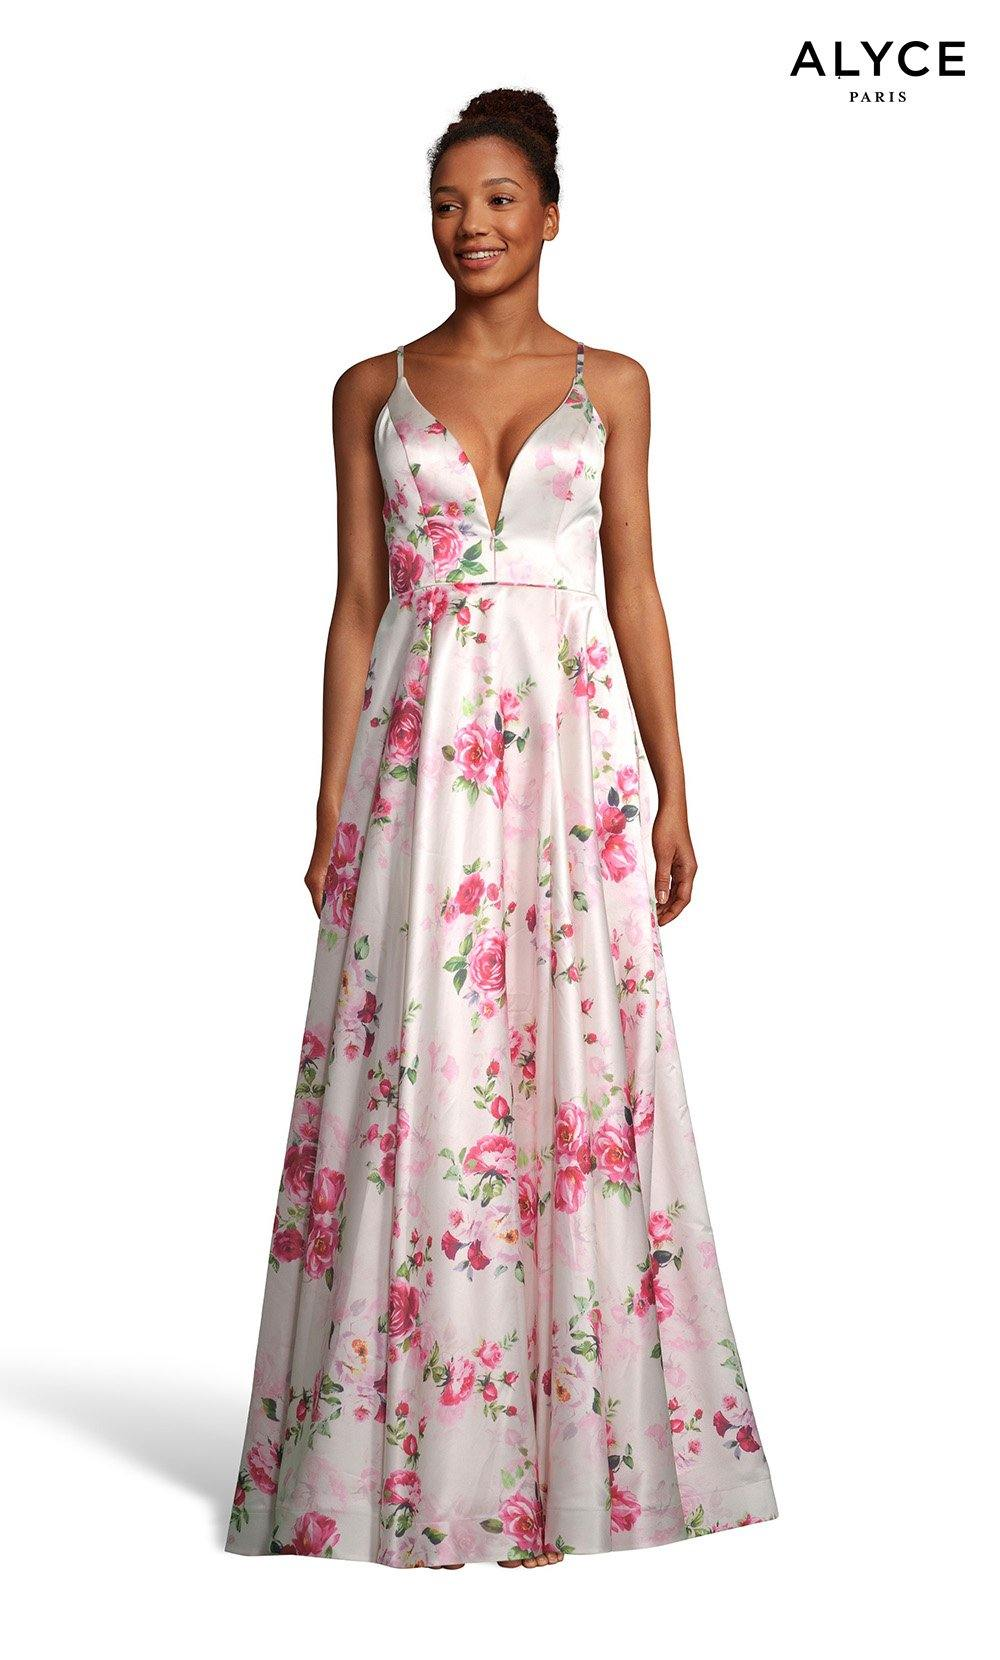 Blush-Rose prom dress with floral print and a plunging neckline